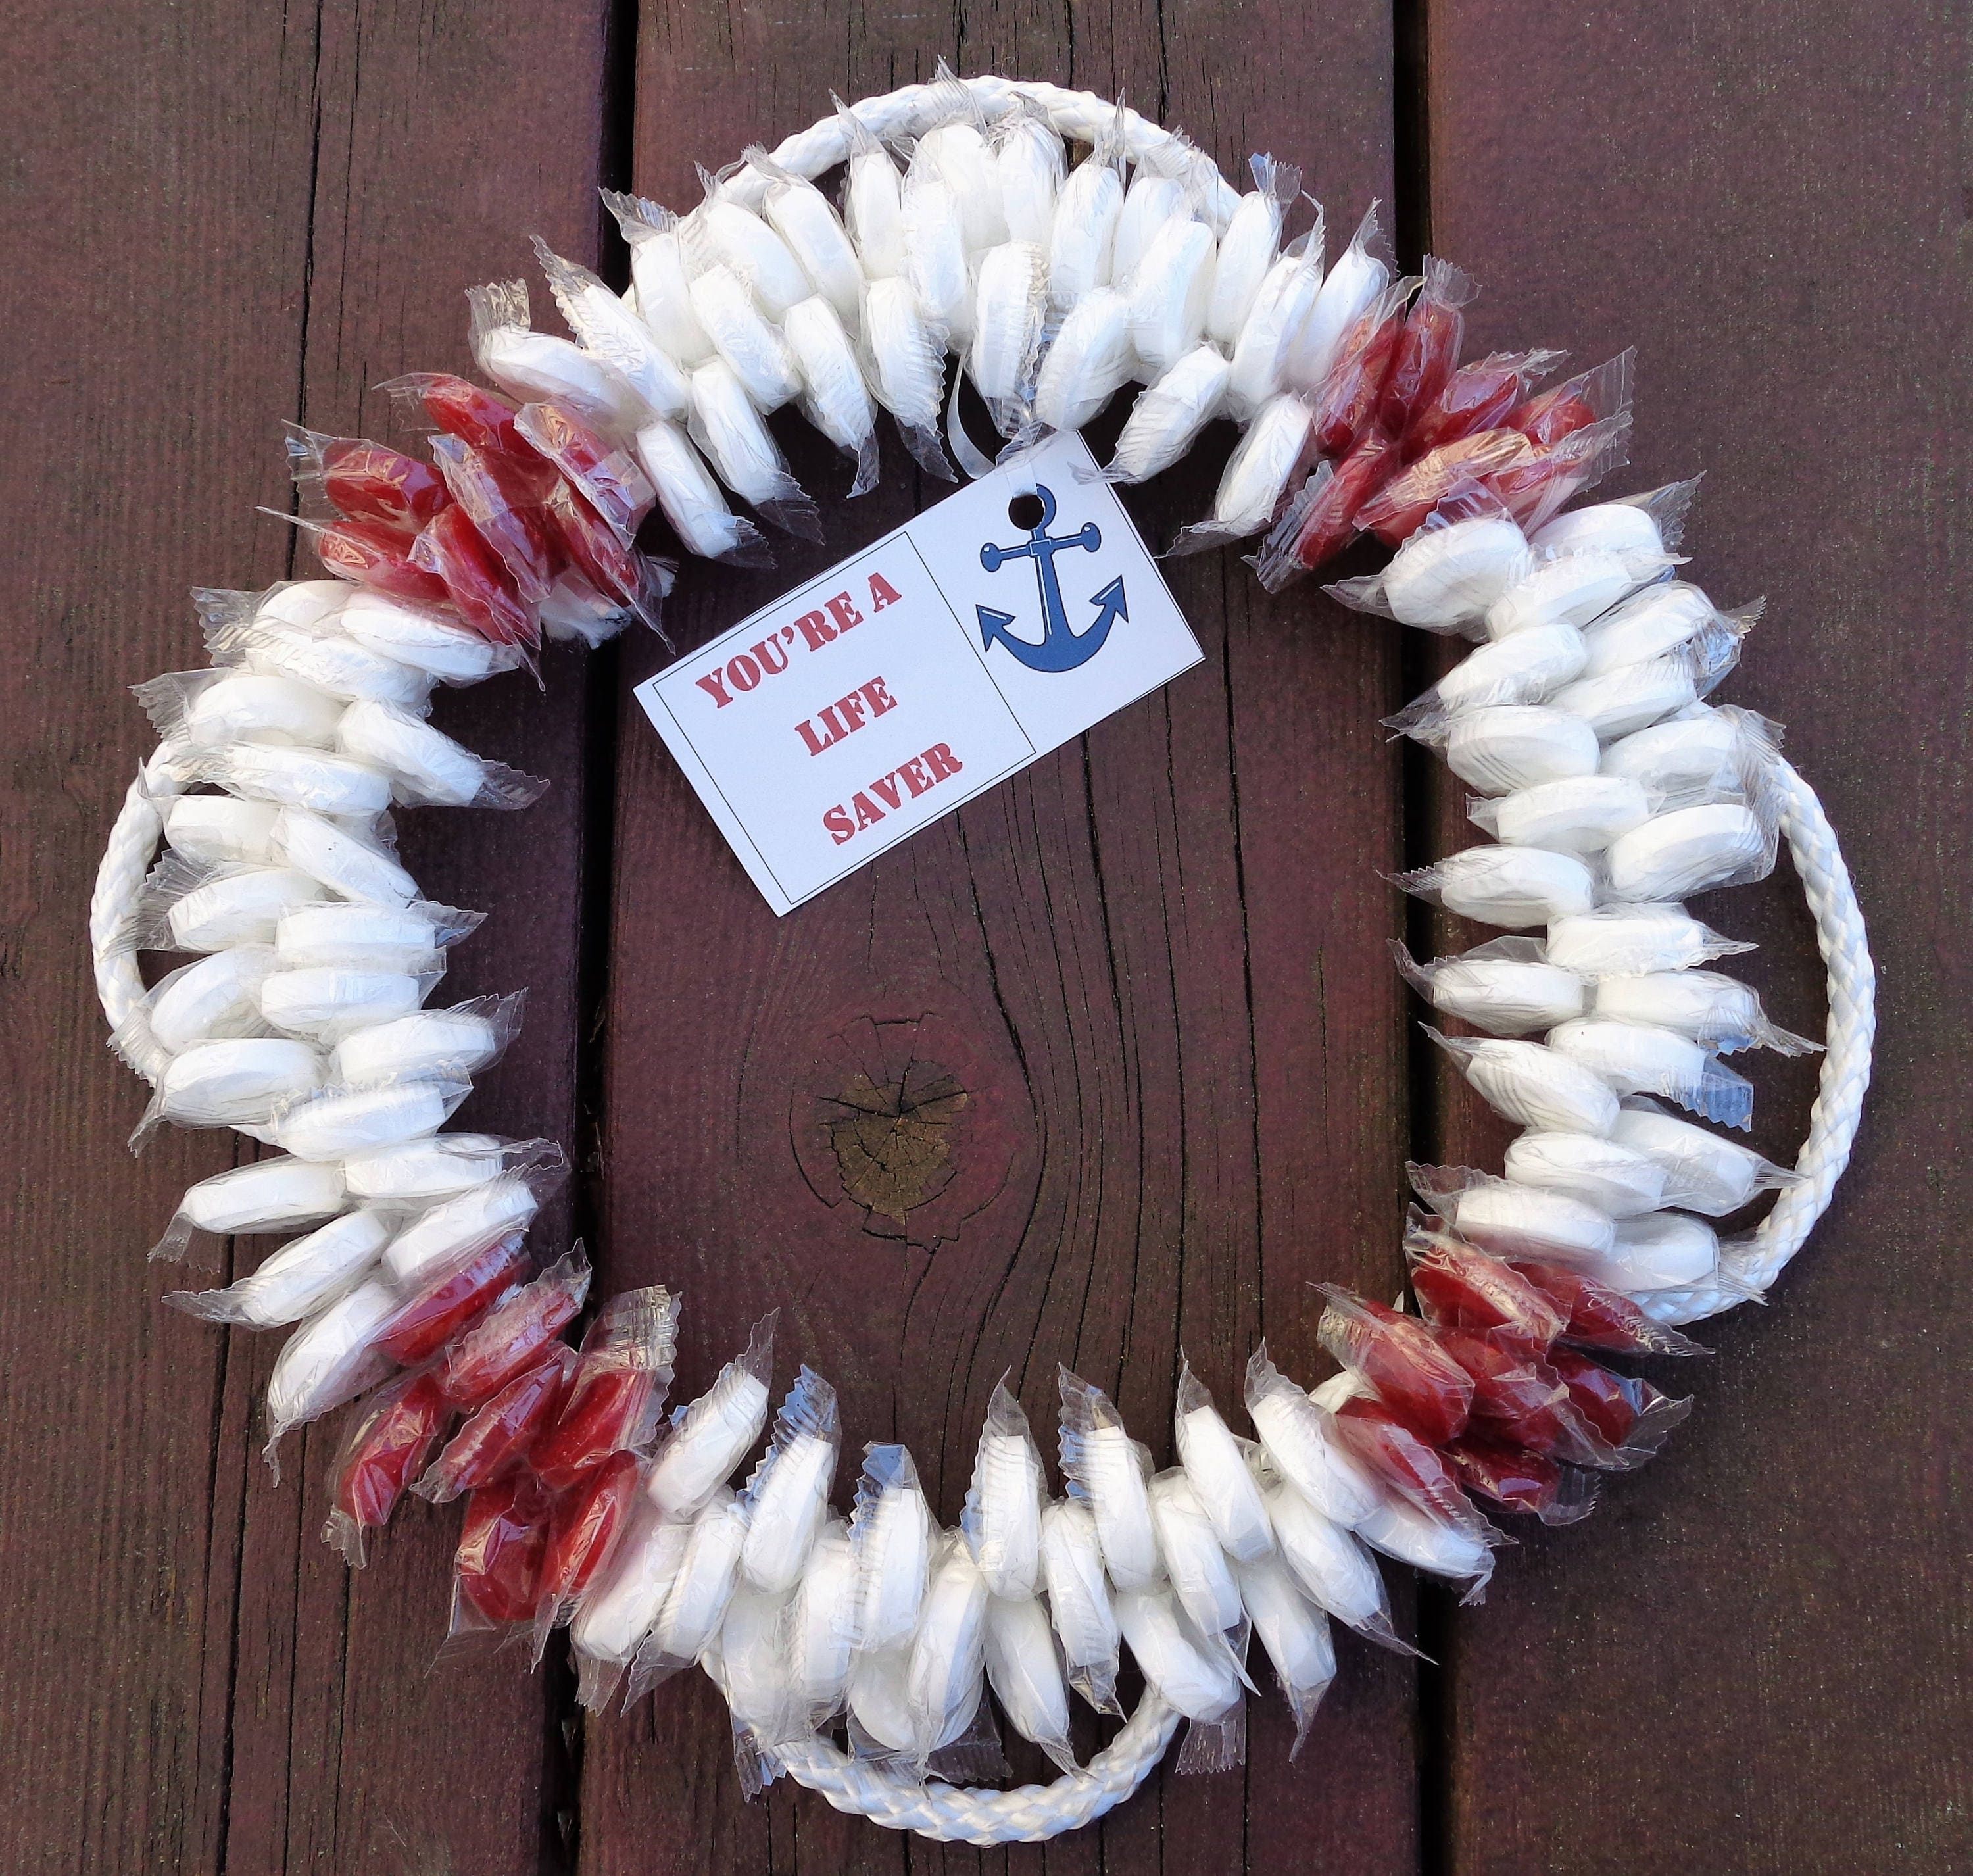 Welcome aboard boat ships life ring clock - Details Life Saver Ring Party Wreath Thank You Gift Navy Candy Welcome Aboard